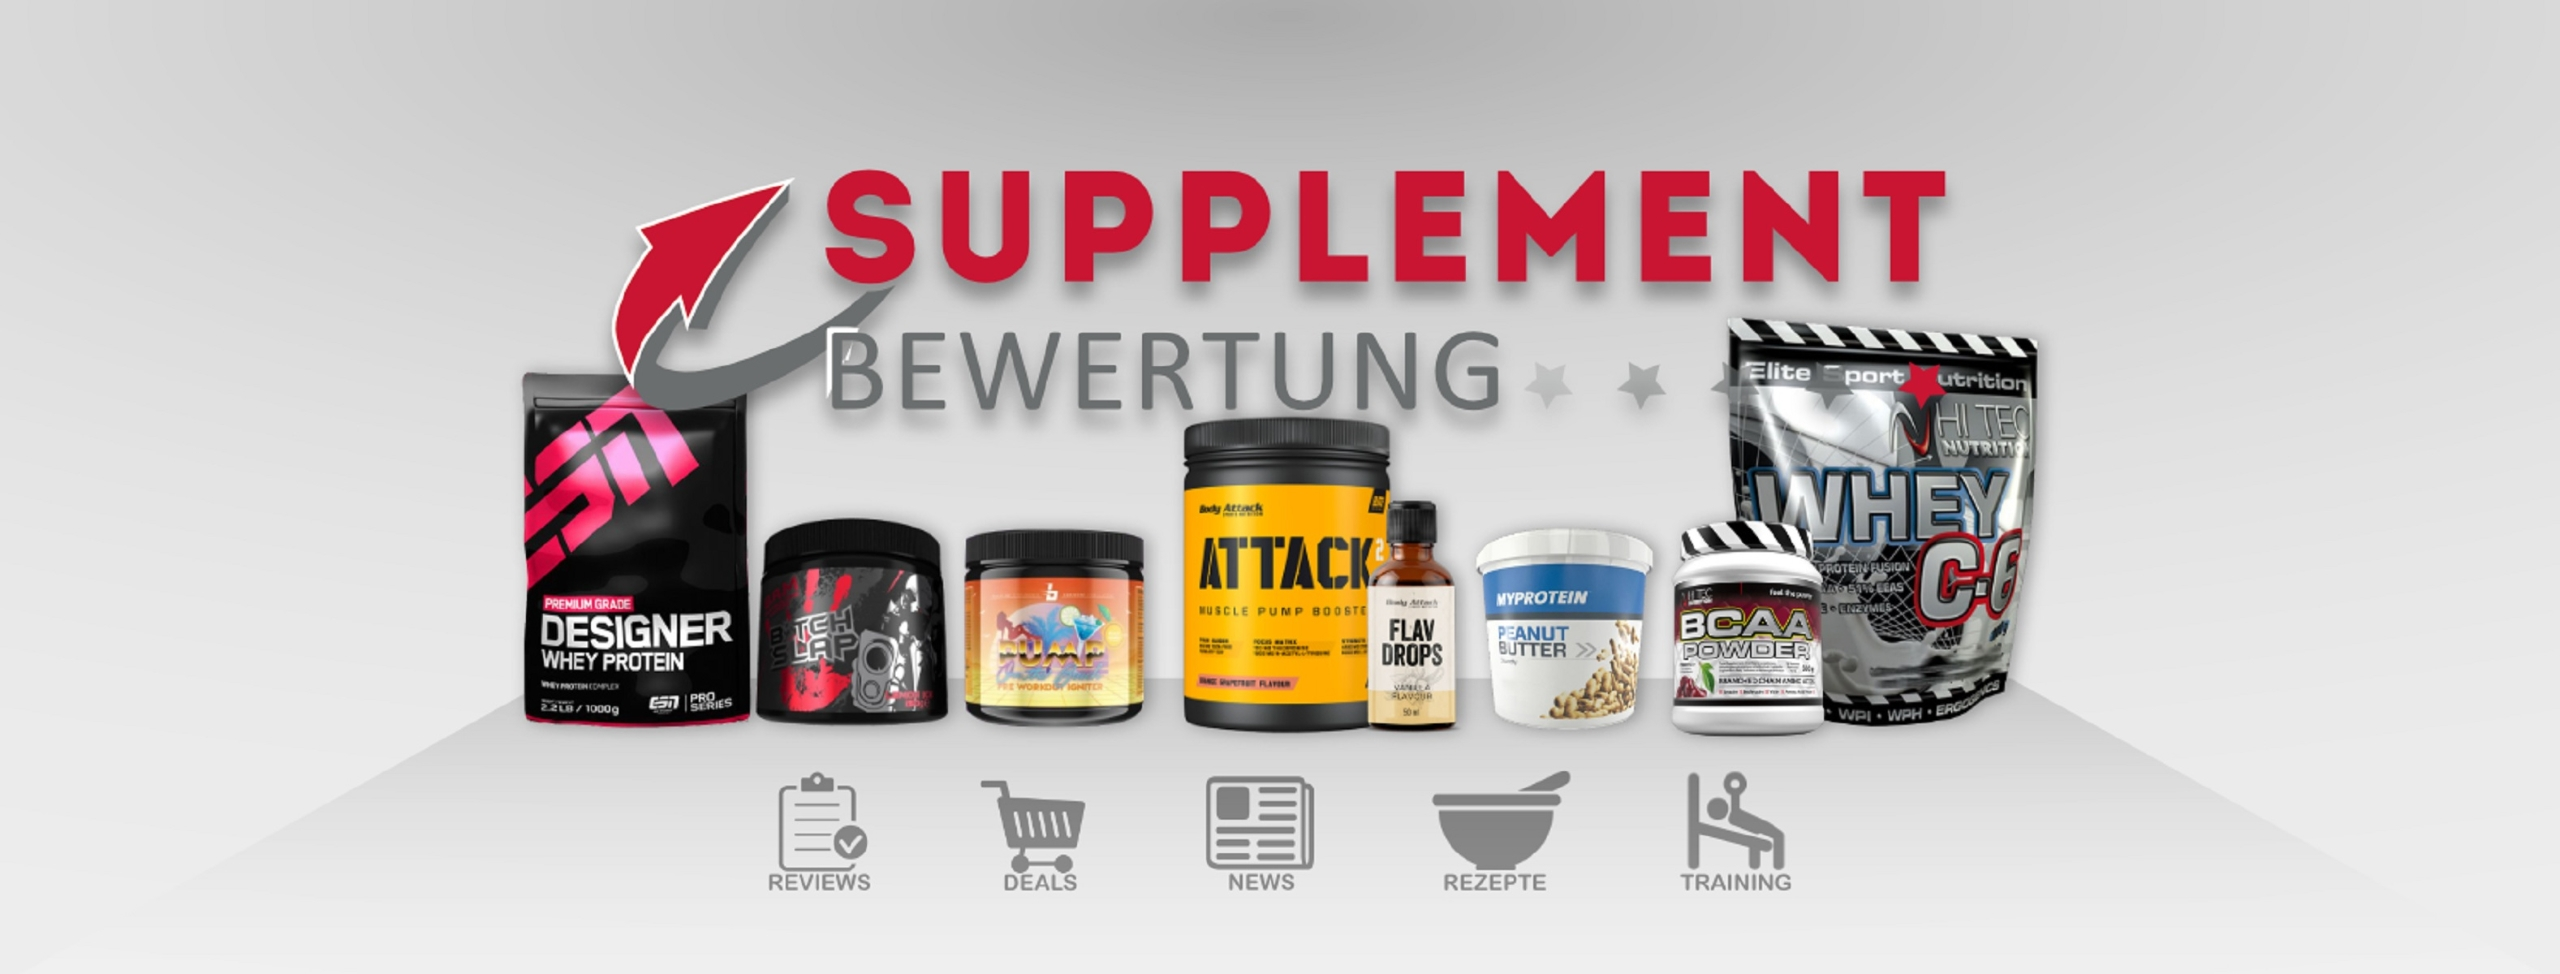 Supplement-Bewertung.de (@supplementbewertung) Cover Image